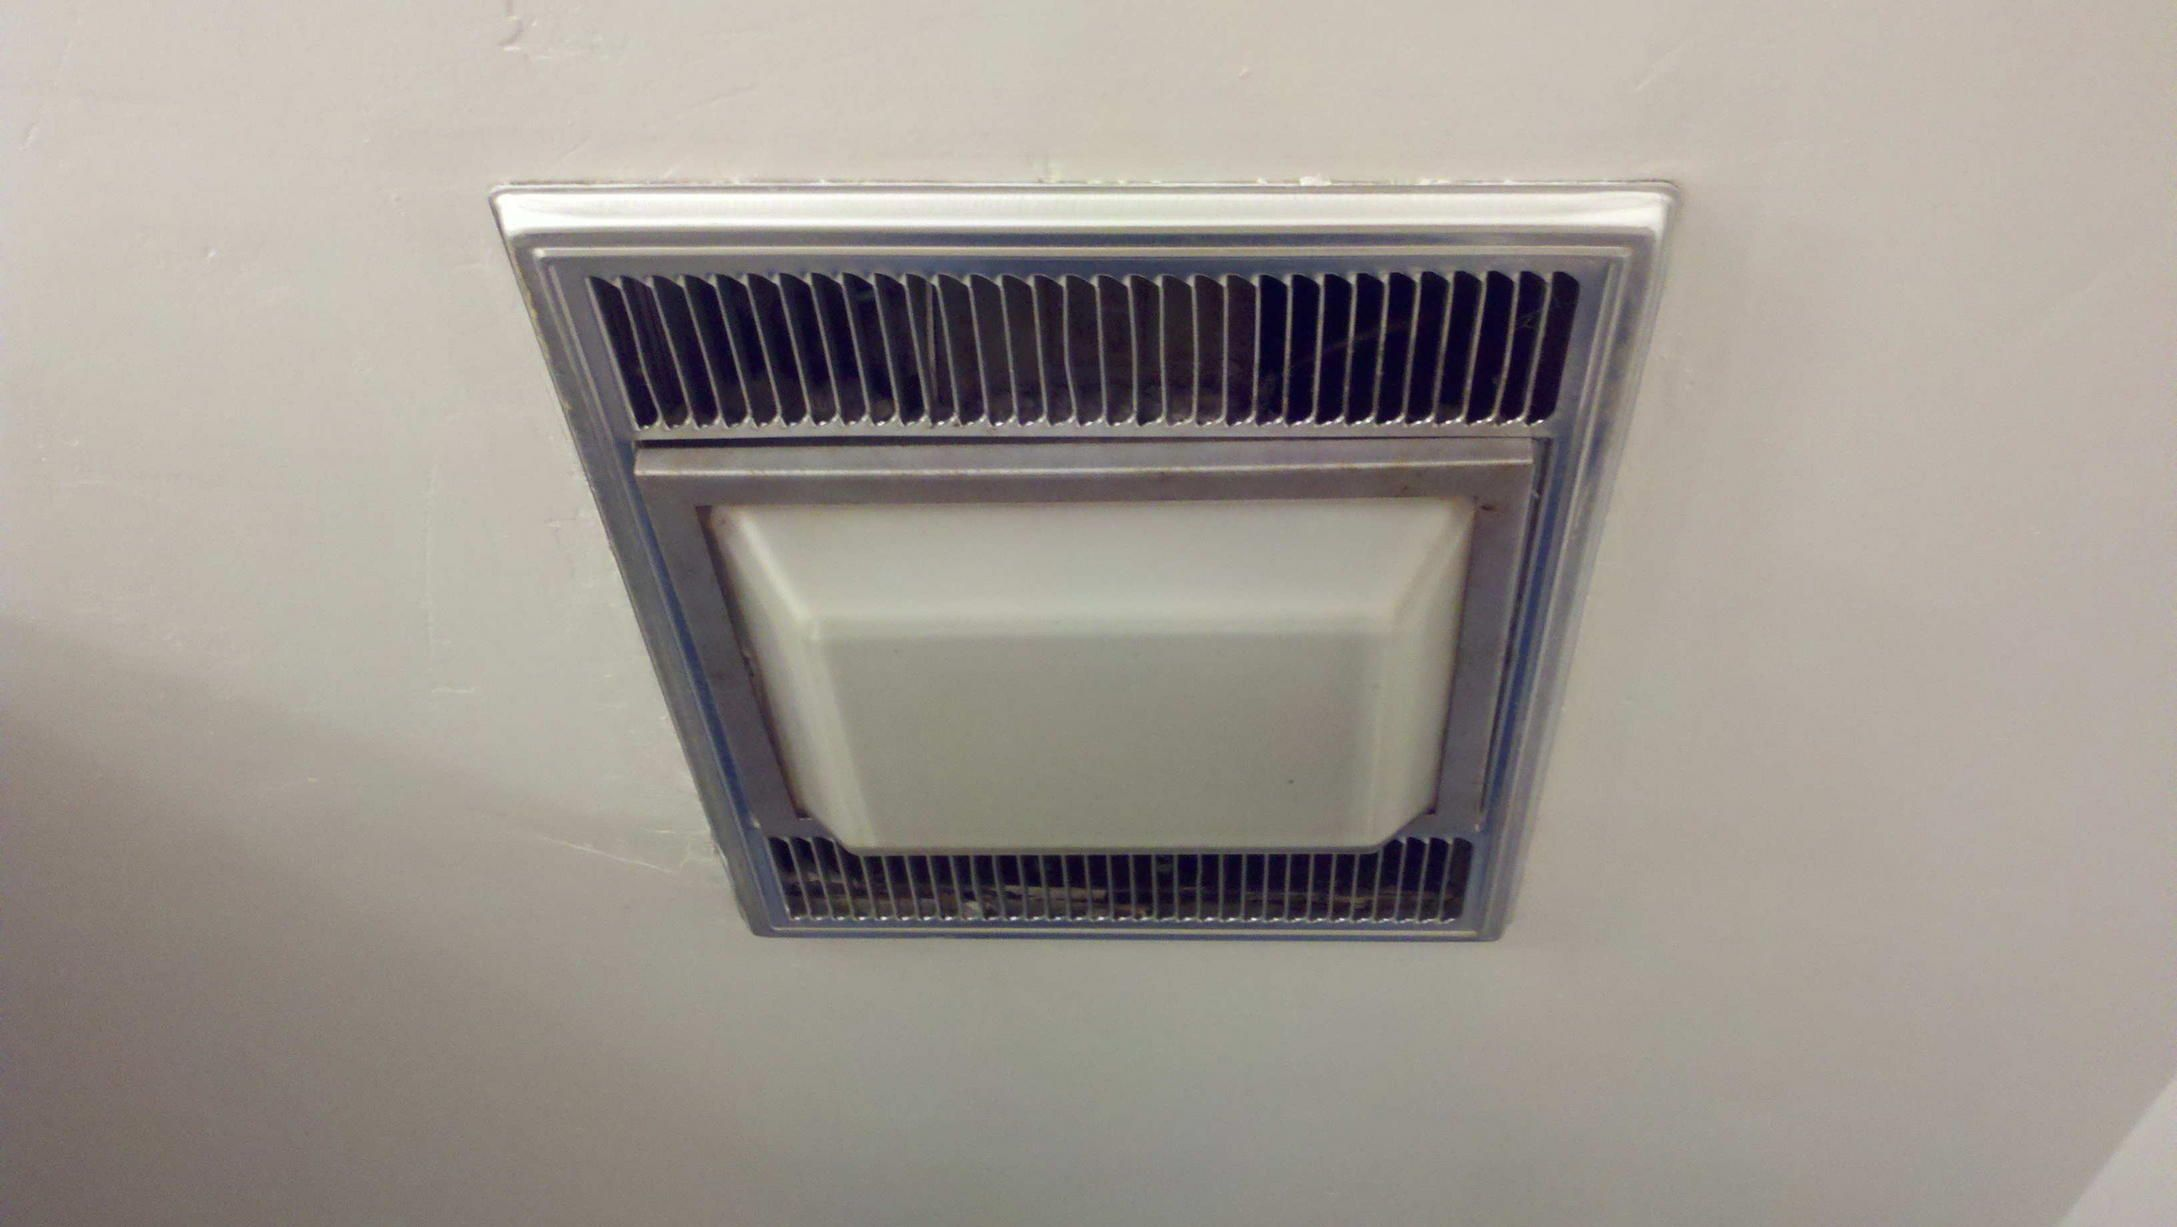 Latest Posts Under Bathroom Fan